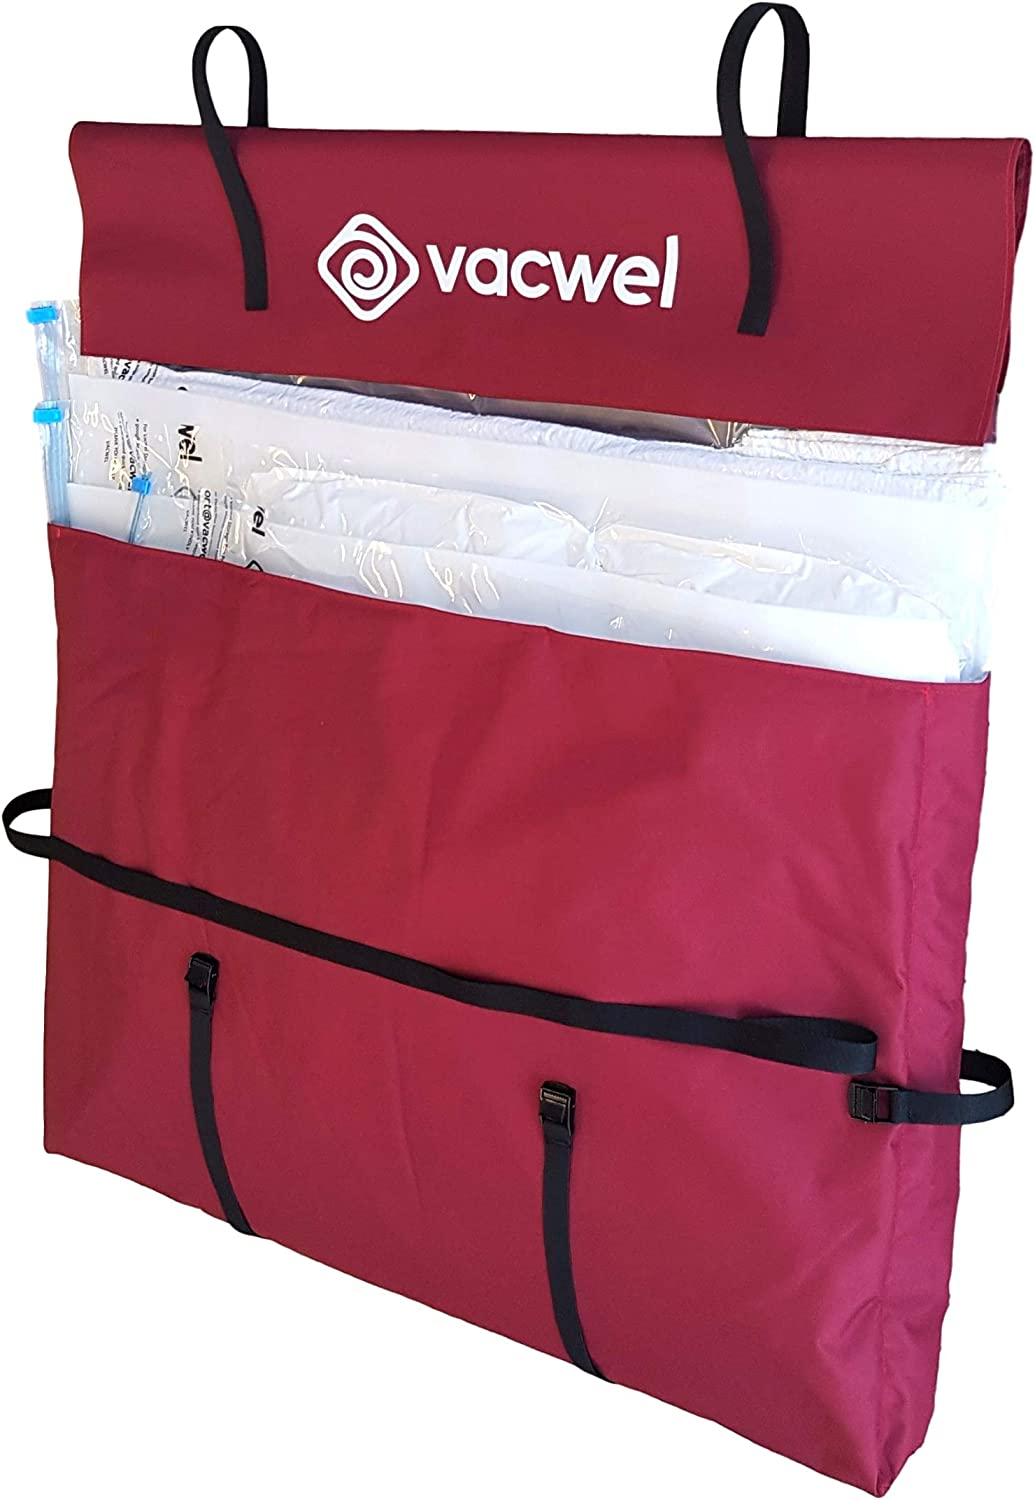 Vacwel Packing & Moving Supplies XL Storage Bags for Home Moves, Dorm Room Space Saving & Vacuum Storage Bag Protection (Marone, Envelope Style)